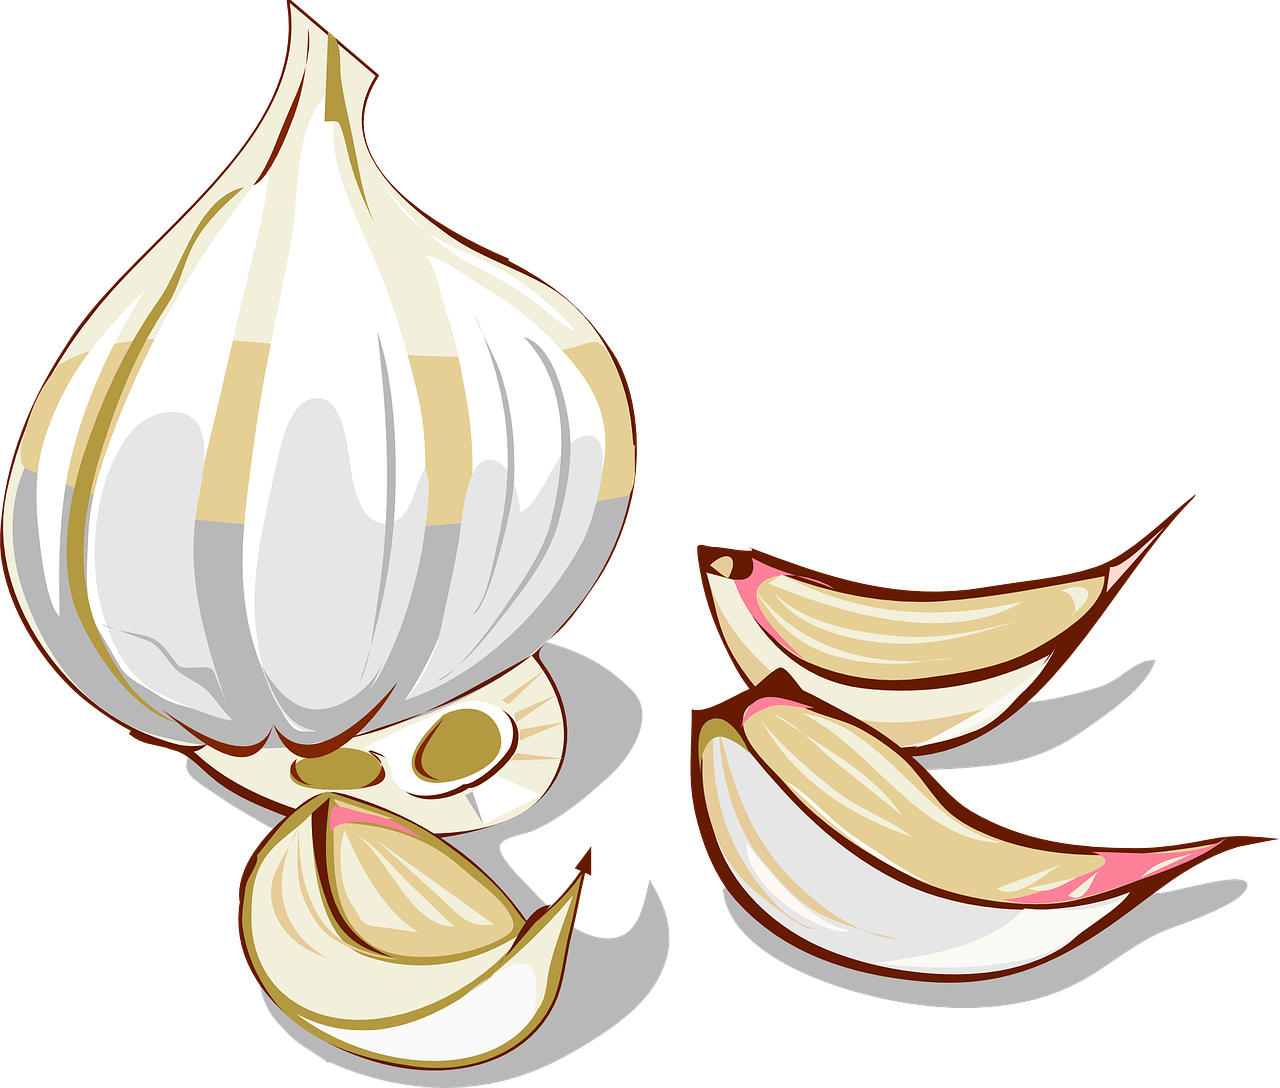 Garlic clipart ginger. Sickle cell and alkaline